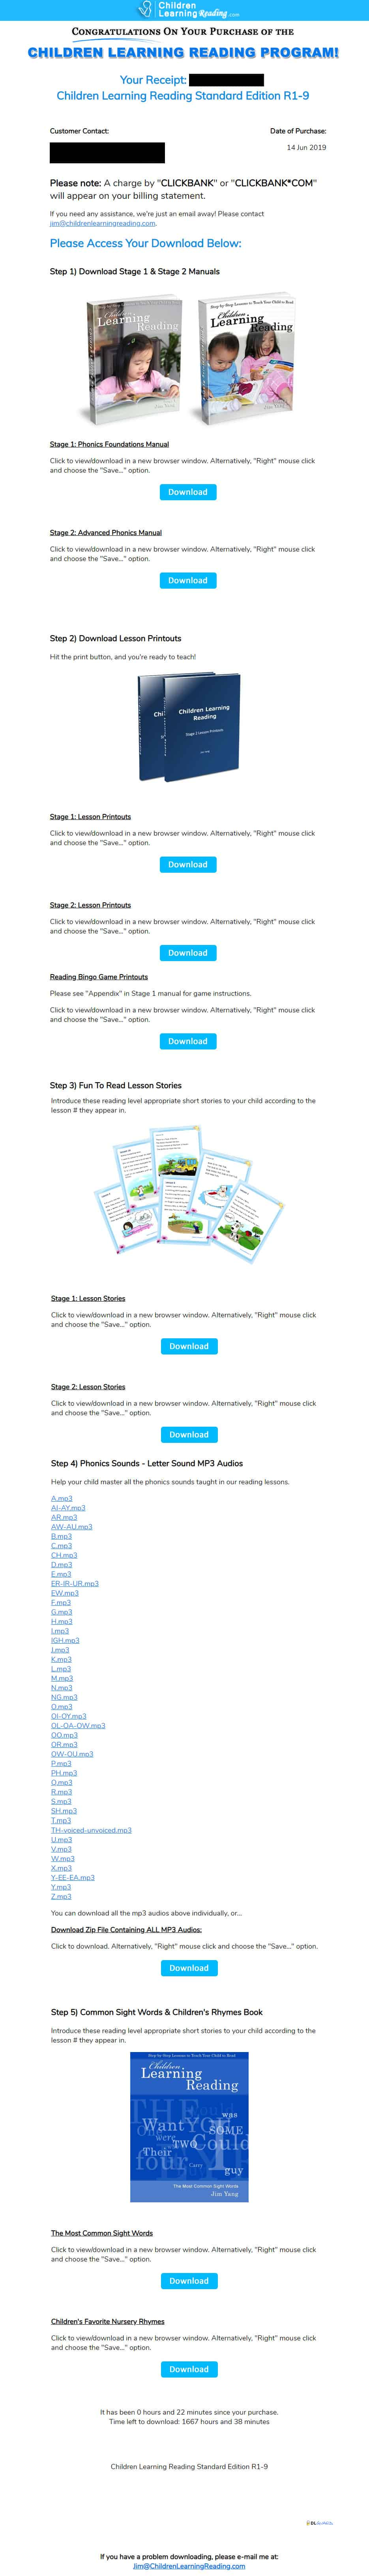 Children Learning Reading Download Page